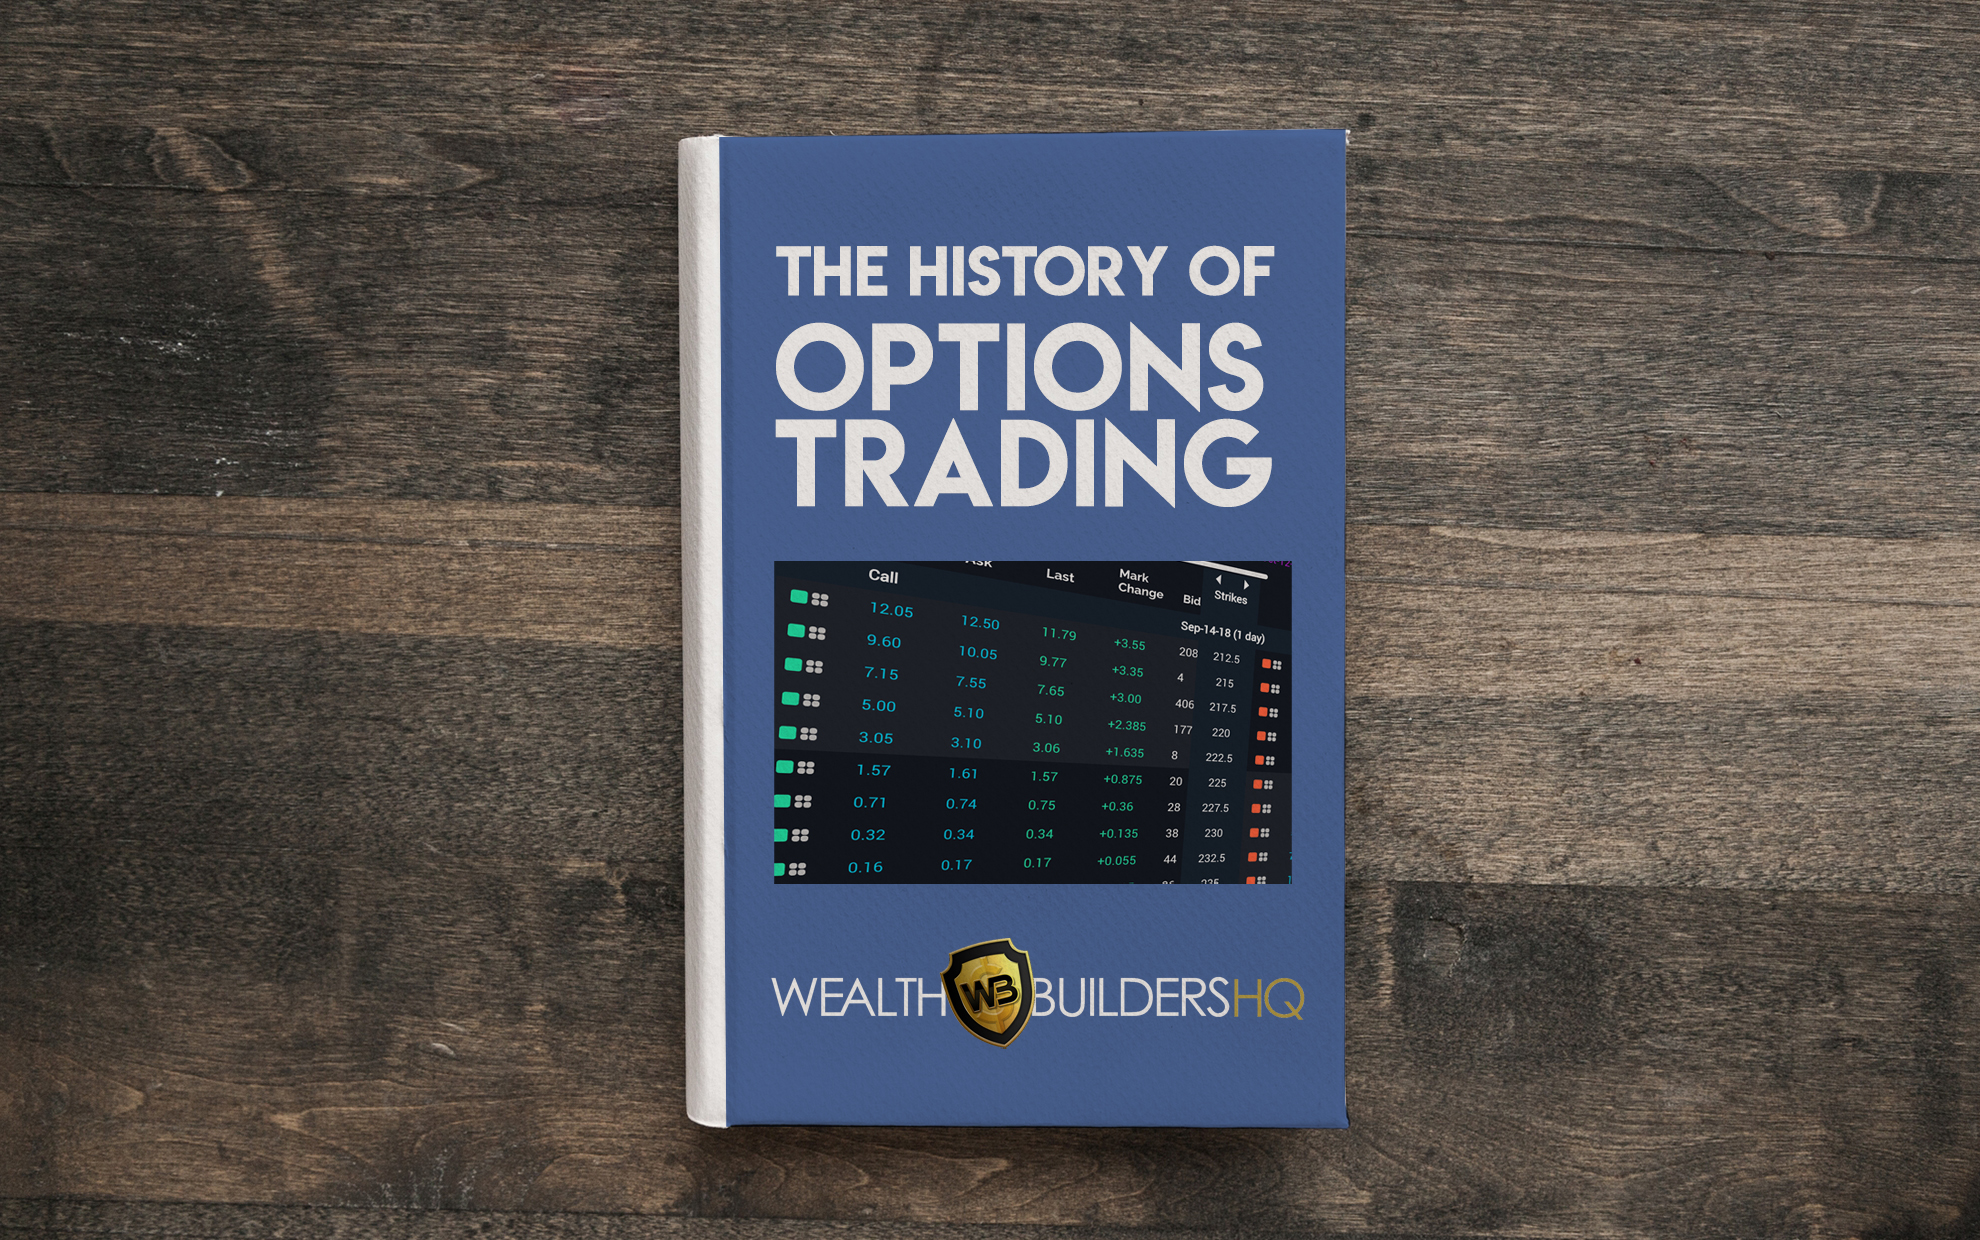 The History of Options Trading